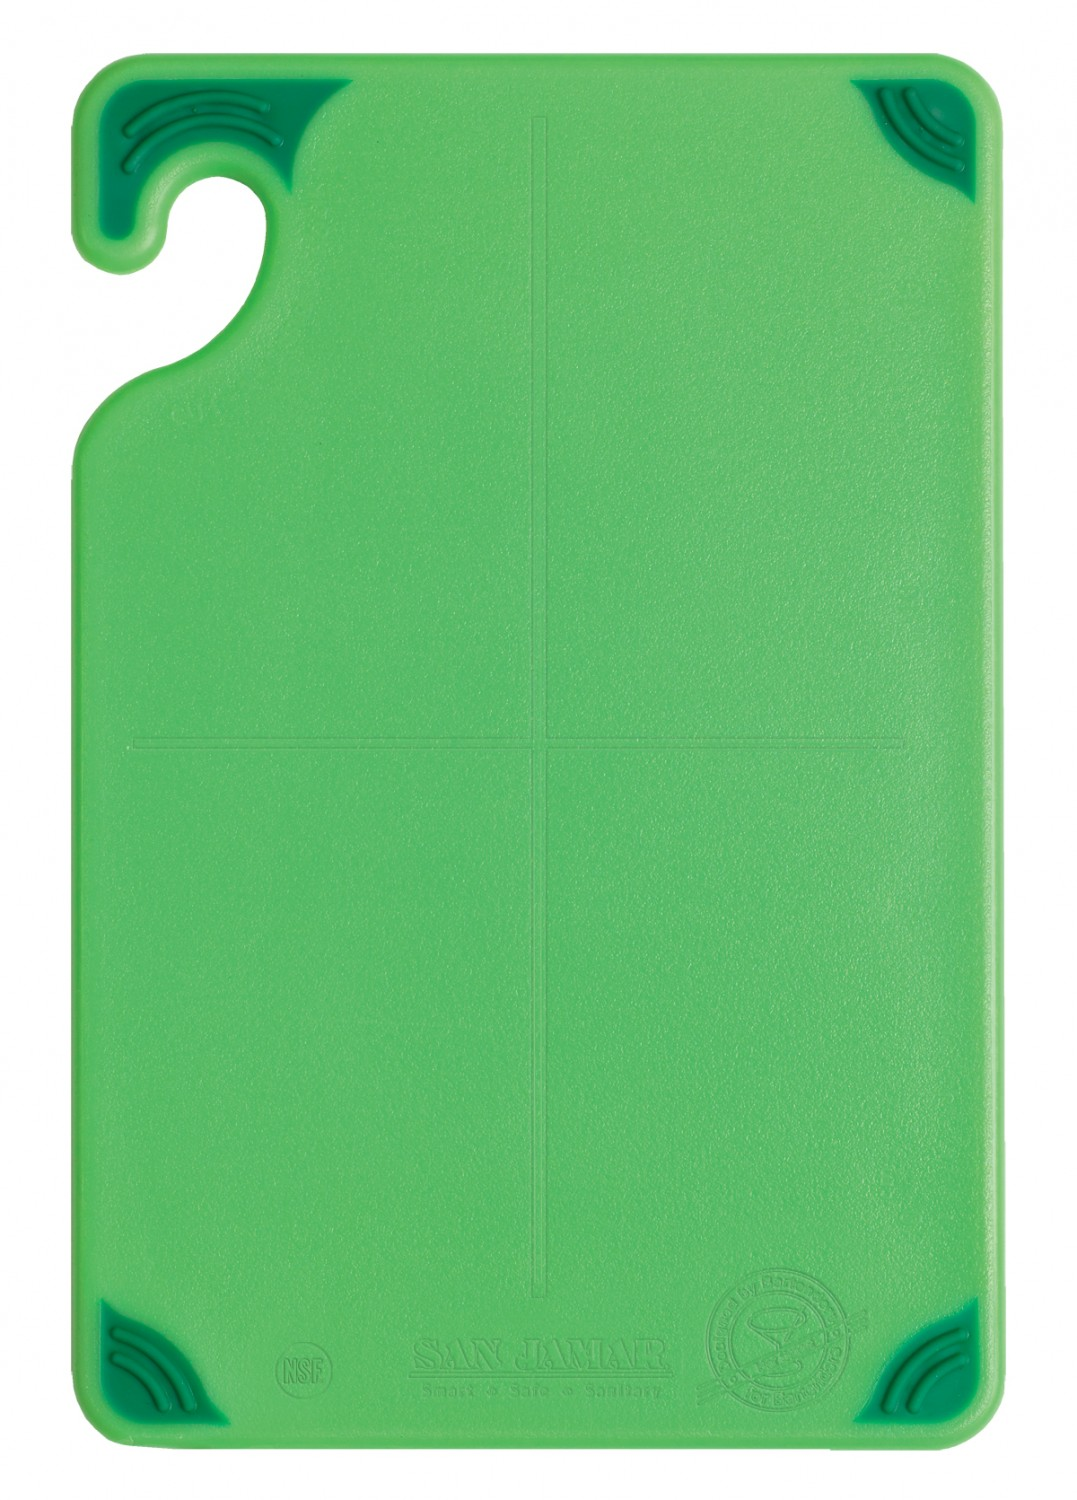 "San Jamar CBG6938GN Saf-T-Grip Non-Slip Grip Green Cutting Board 6"" x 9"""